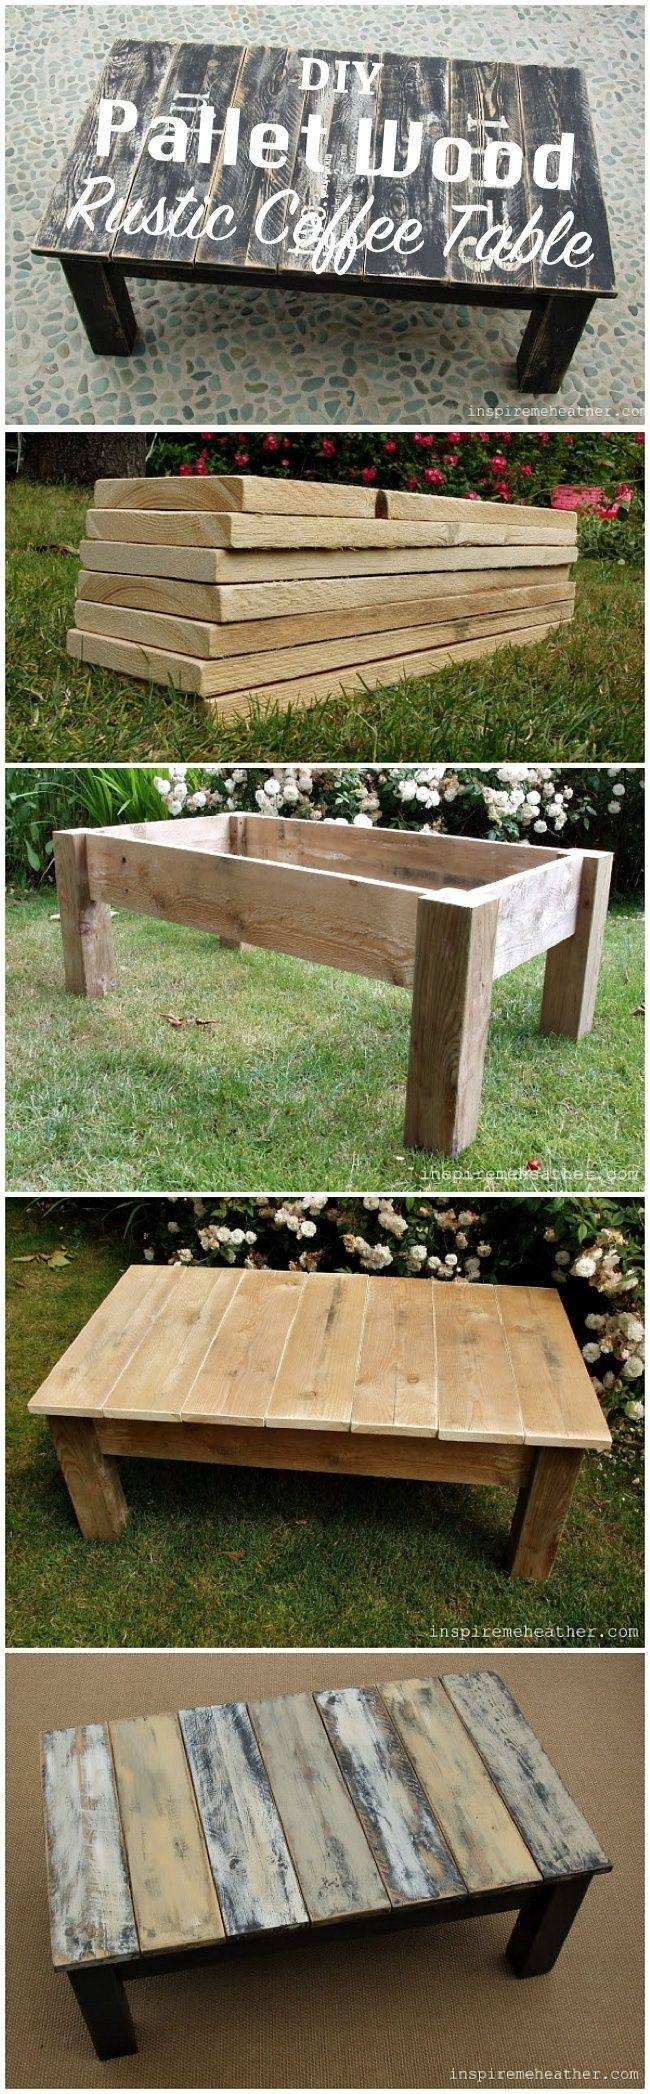 Best 25+ Rustic Coffee Tables Ideas On Pinterest | House Furniture intended for Rustic Wood Diy Coffee Tables (Image 7 of 30)